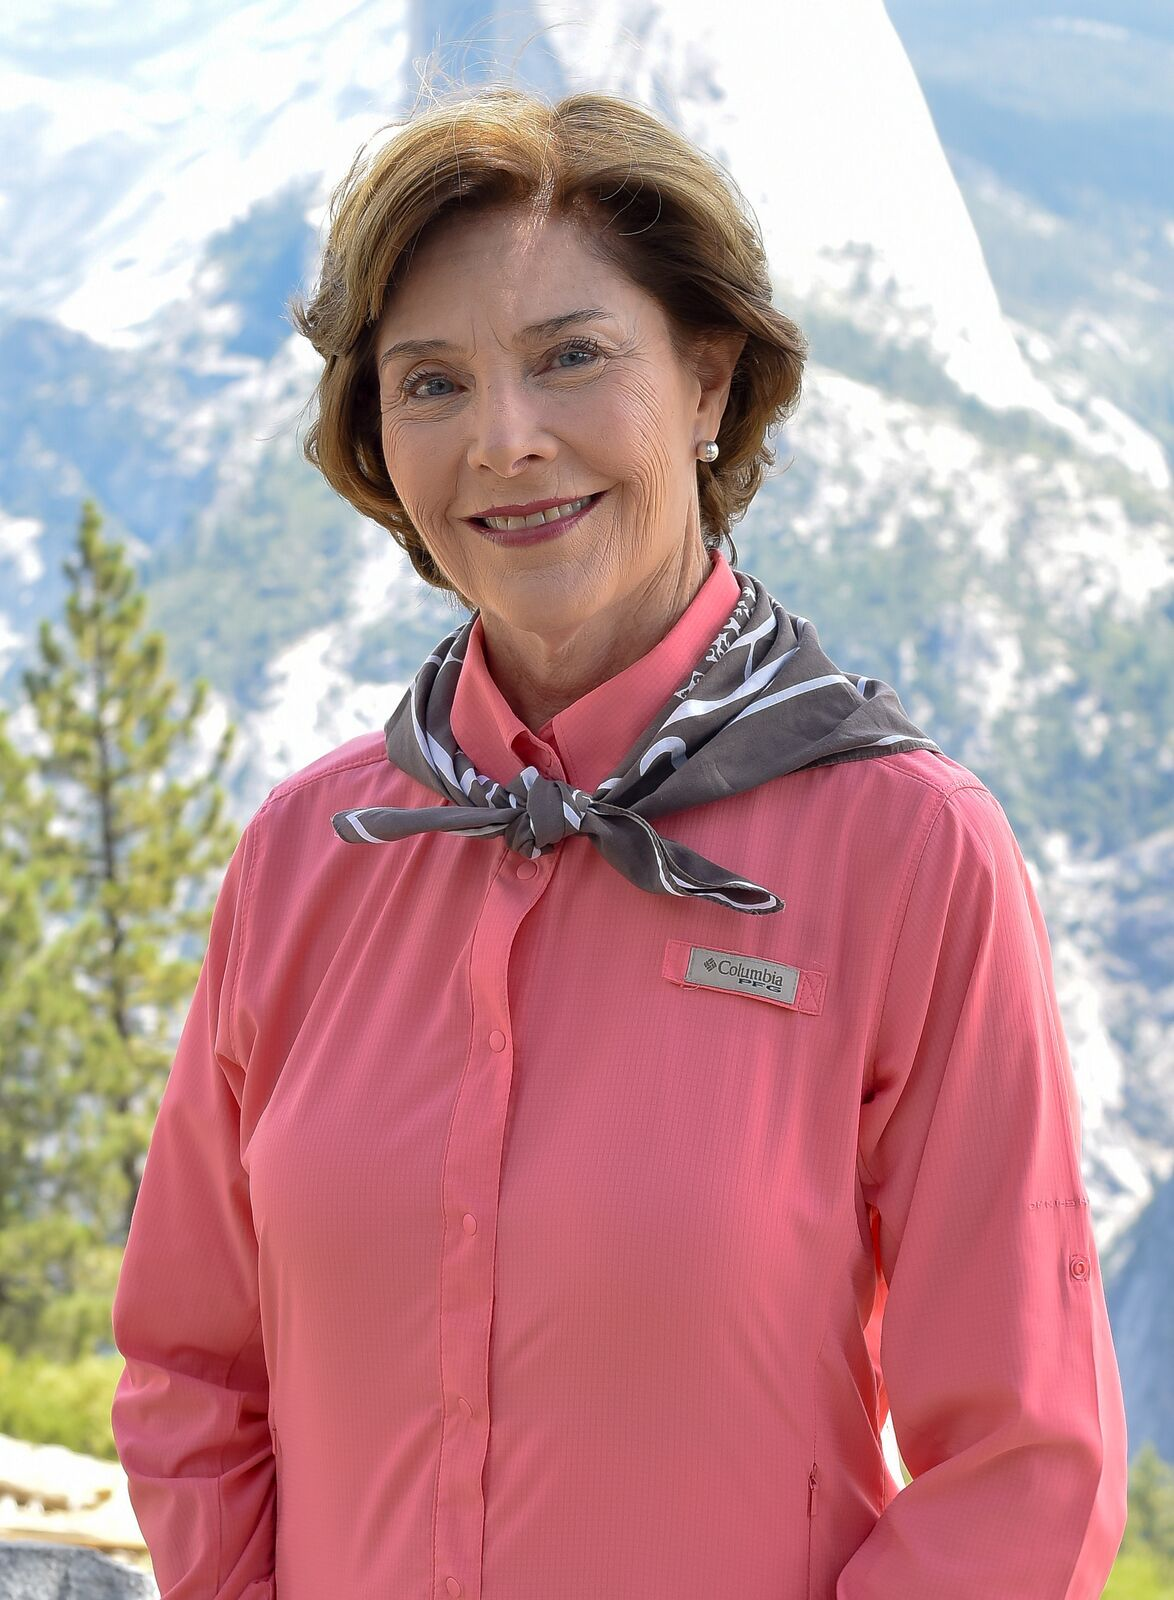 Laura Bush visits Yosemite National Park for the 99th birthday of the National Park Service on July 30, 2015, in Yosemite Village, California | Photo: Steve Jennings/Getty Images